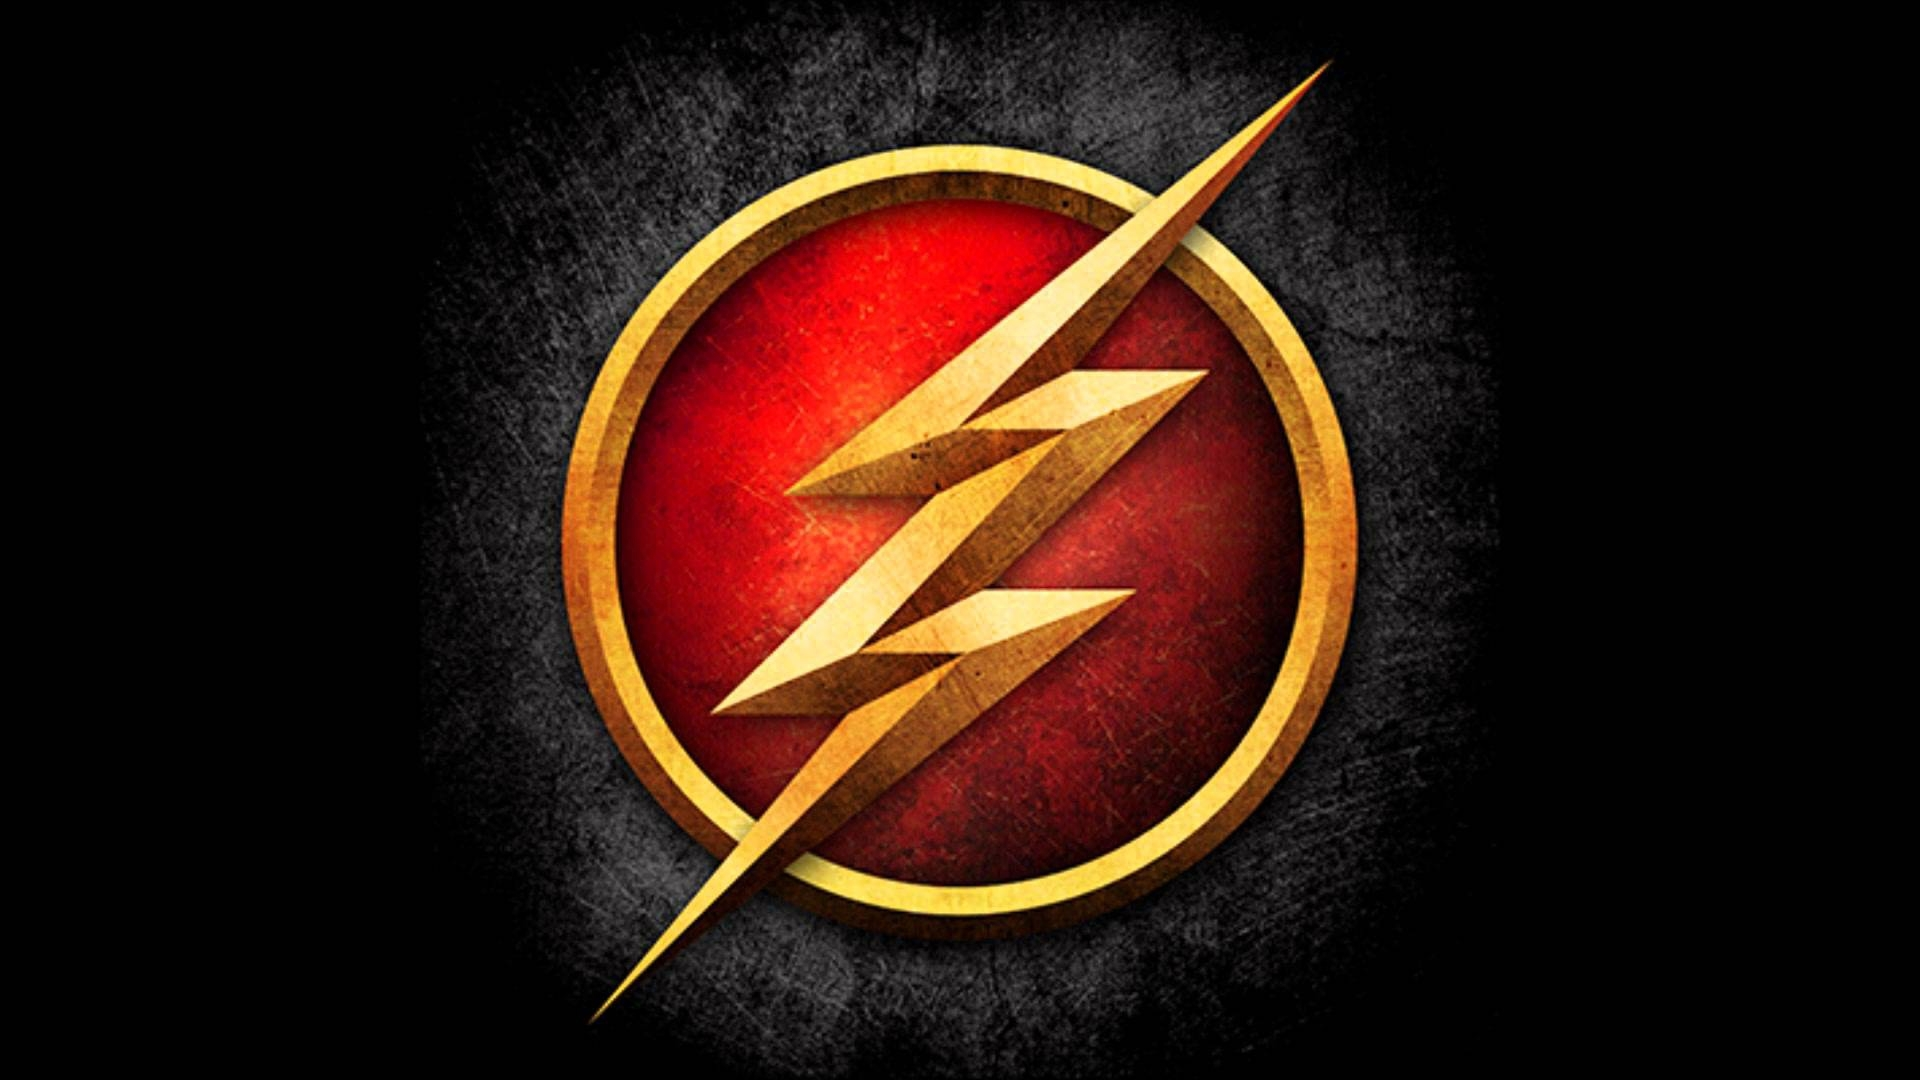 flash logo wallpapers hd | pixelstalk